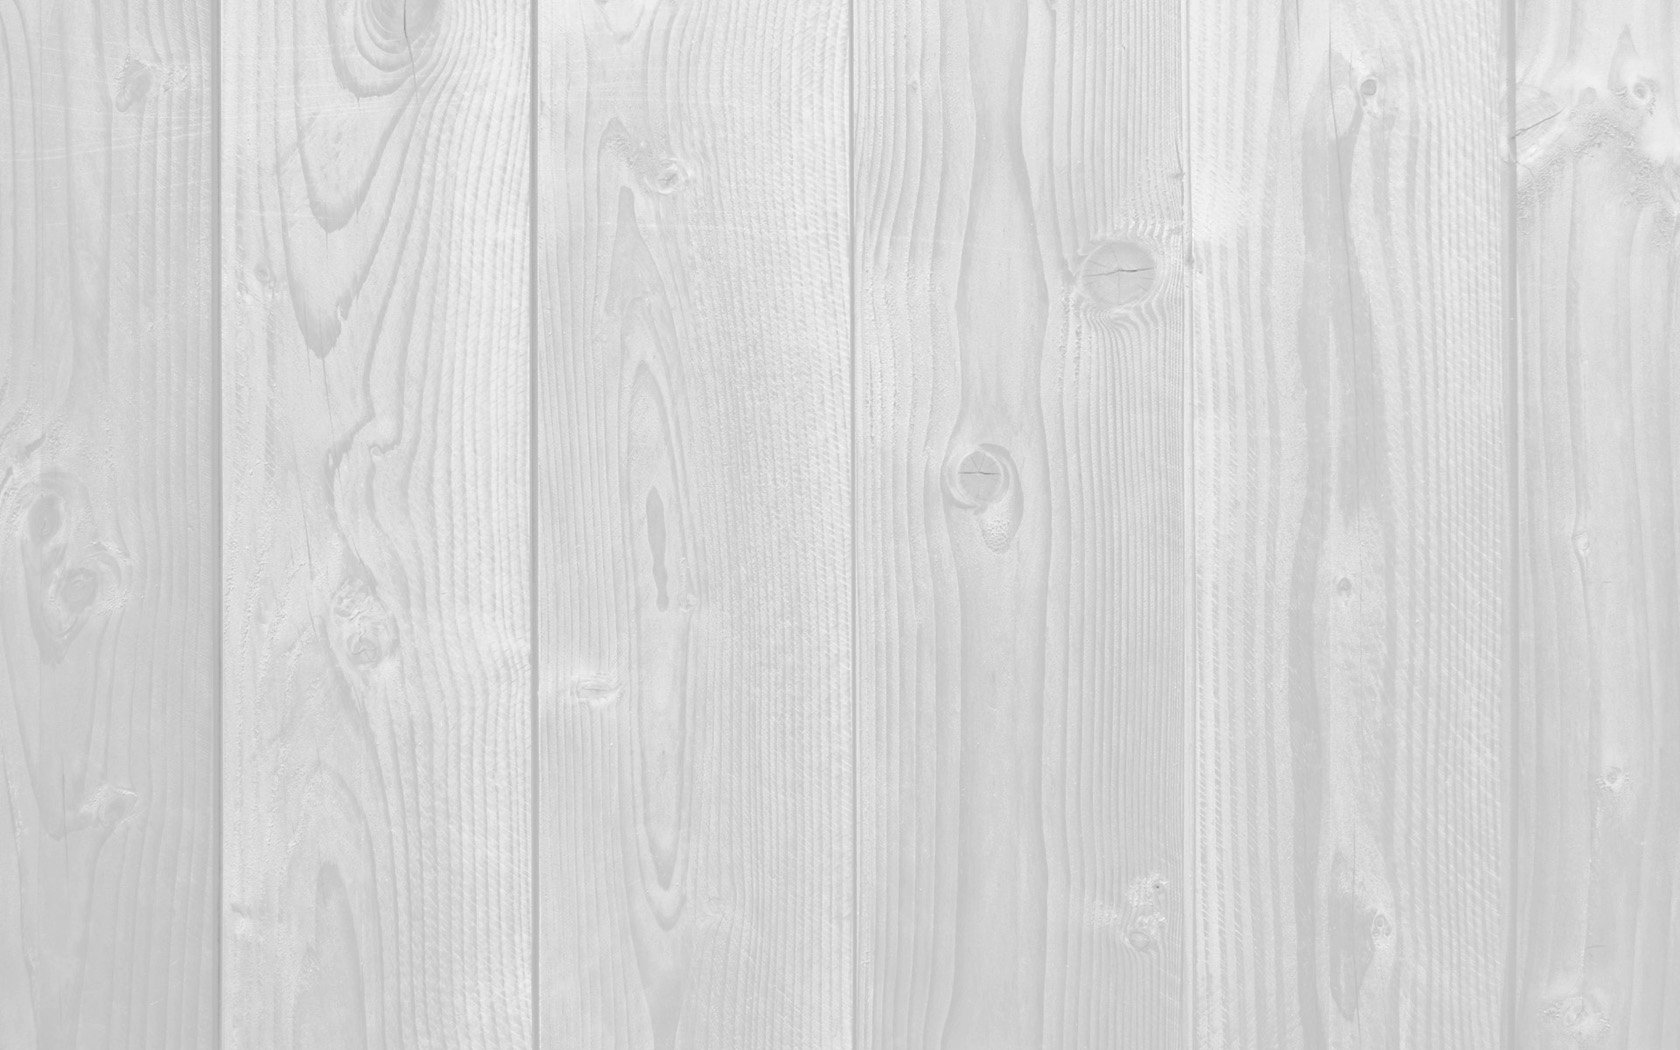 White Wood Background Wallpaper  Wallpapersafari. Hardwood Flooring In Kitchen. Designer Kitchen Backsplash. Blue Kitchen Tile Backsplash. Kitchen Cabinets Colors And Styles. Images Kitchen Backsplash Ideas. Vintage Kitchen Colors. Kitchens With Polished Concrete Floors. Countertop Kitchen Sink